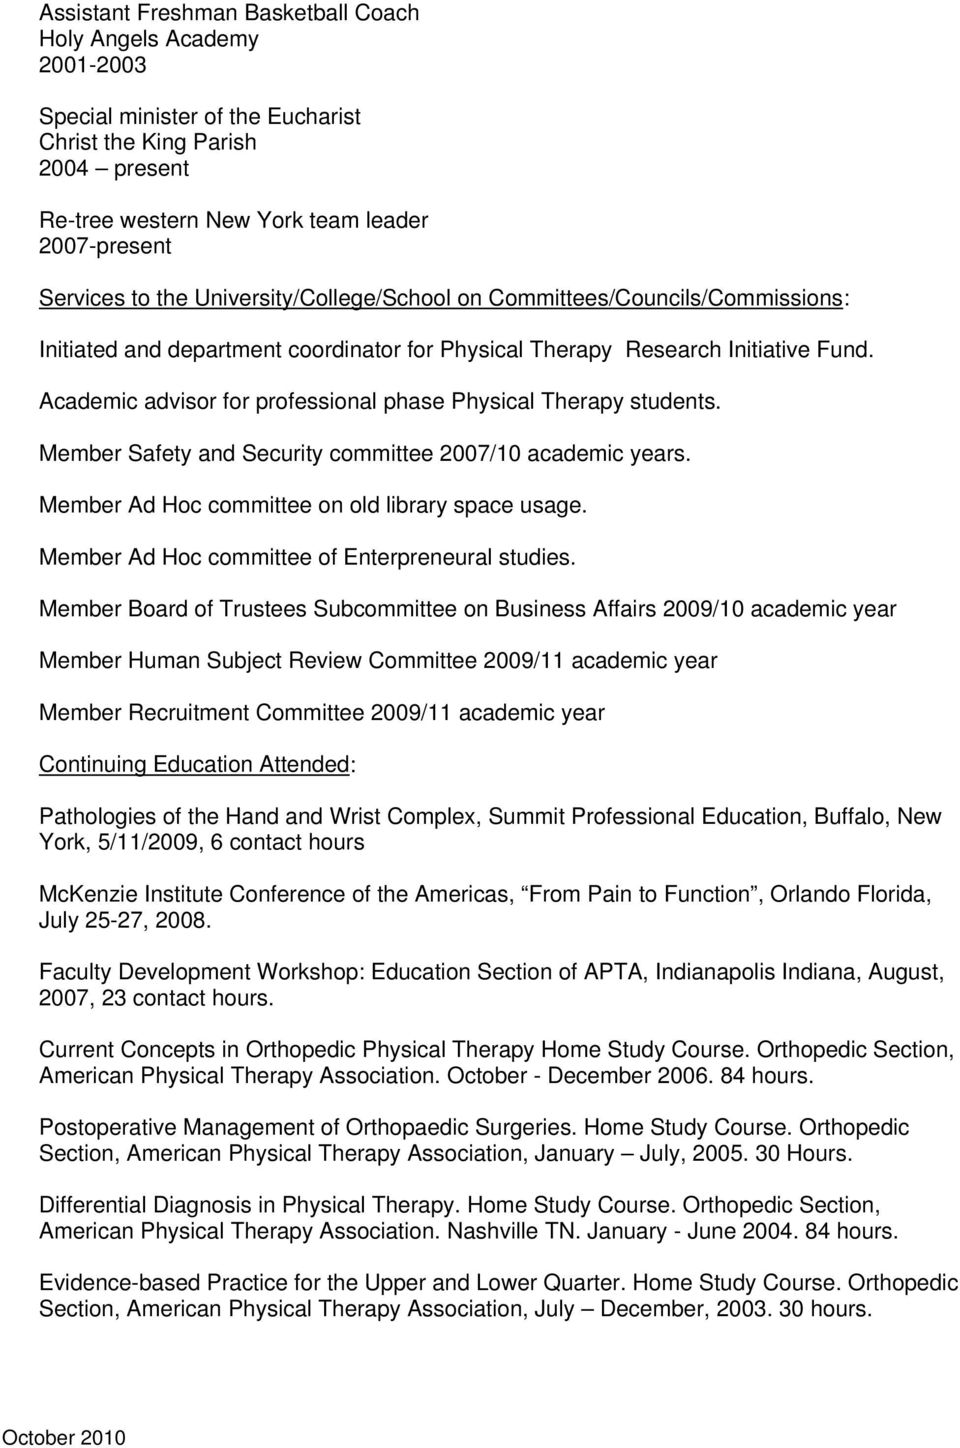 Academic advisor for professional phase Physical Therapy students. Member Safety and Security committee 2007/10 academic years. Member Ad Hoc committee on old library space usage.